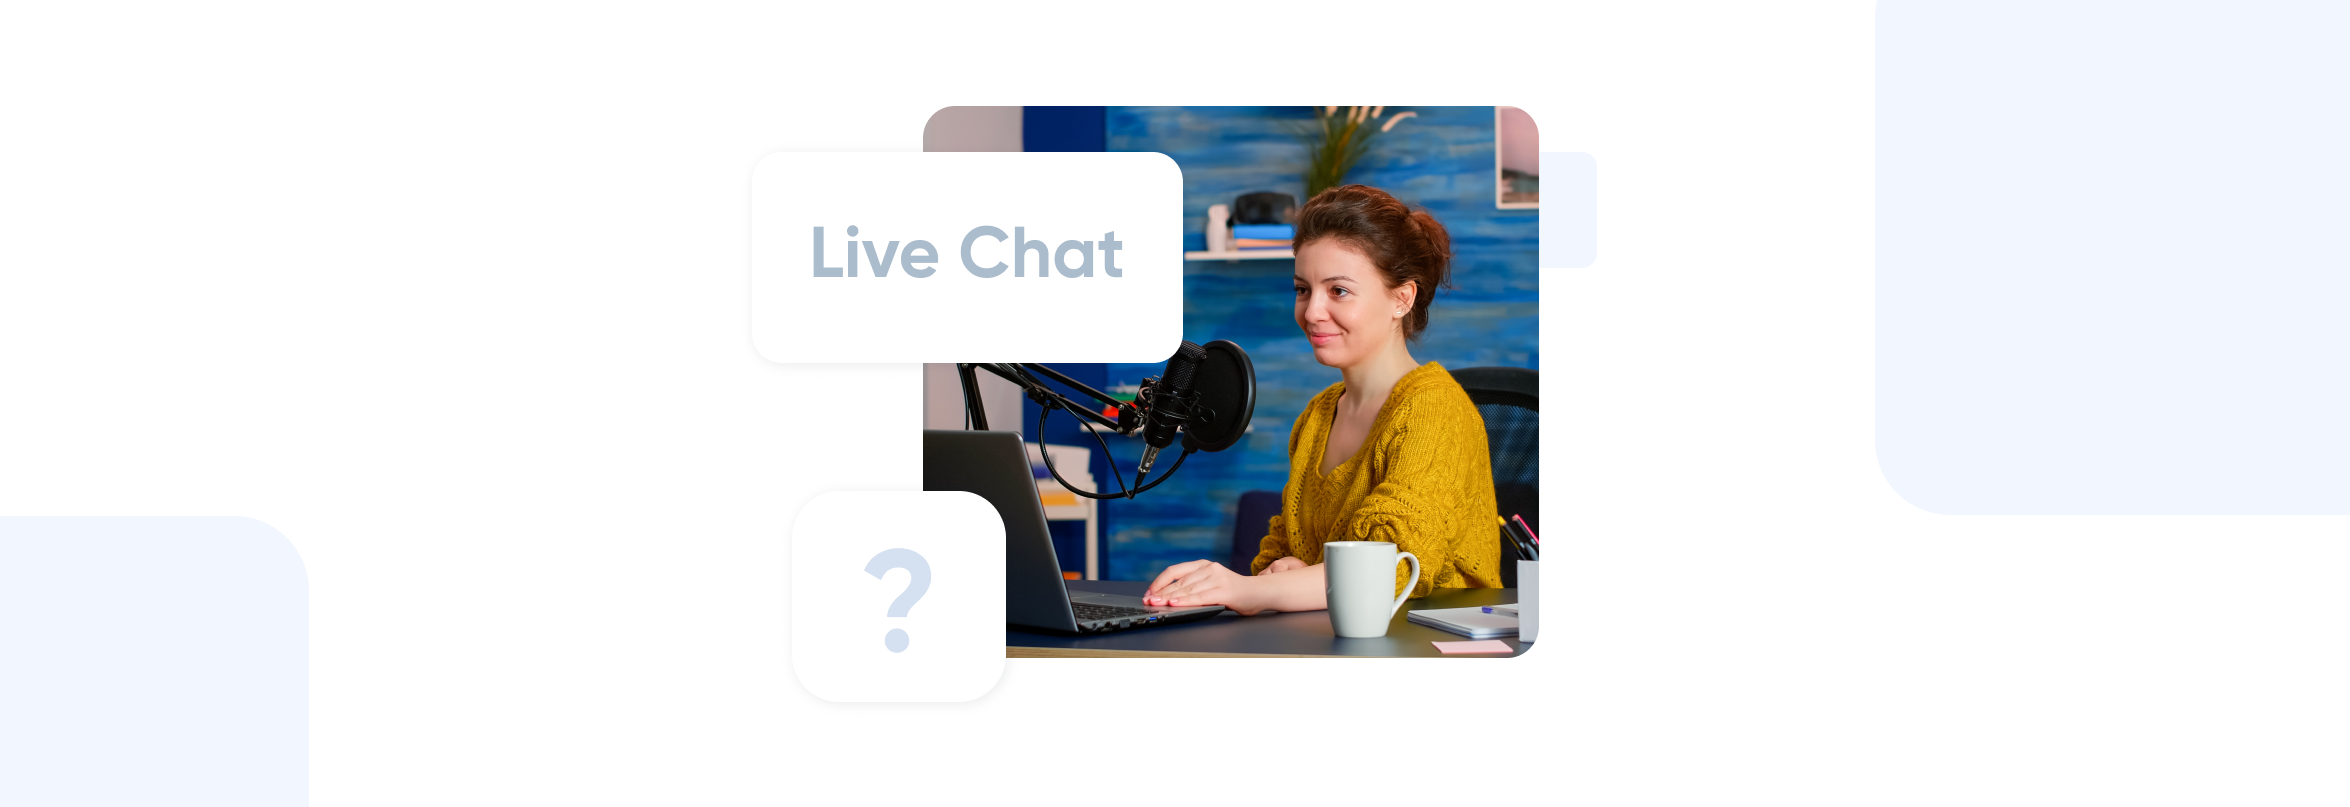 Live chat support at SimplyBook.me